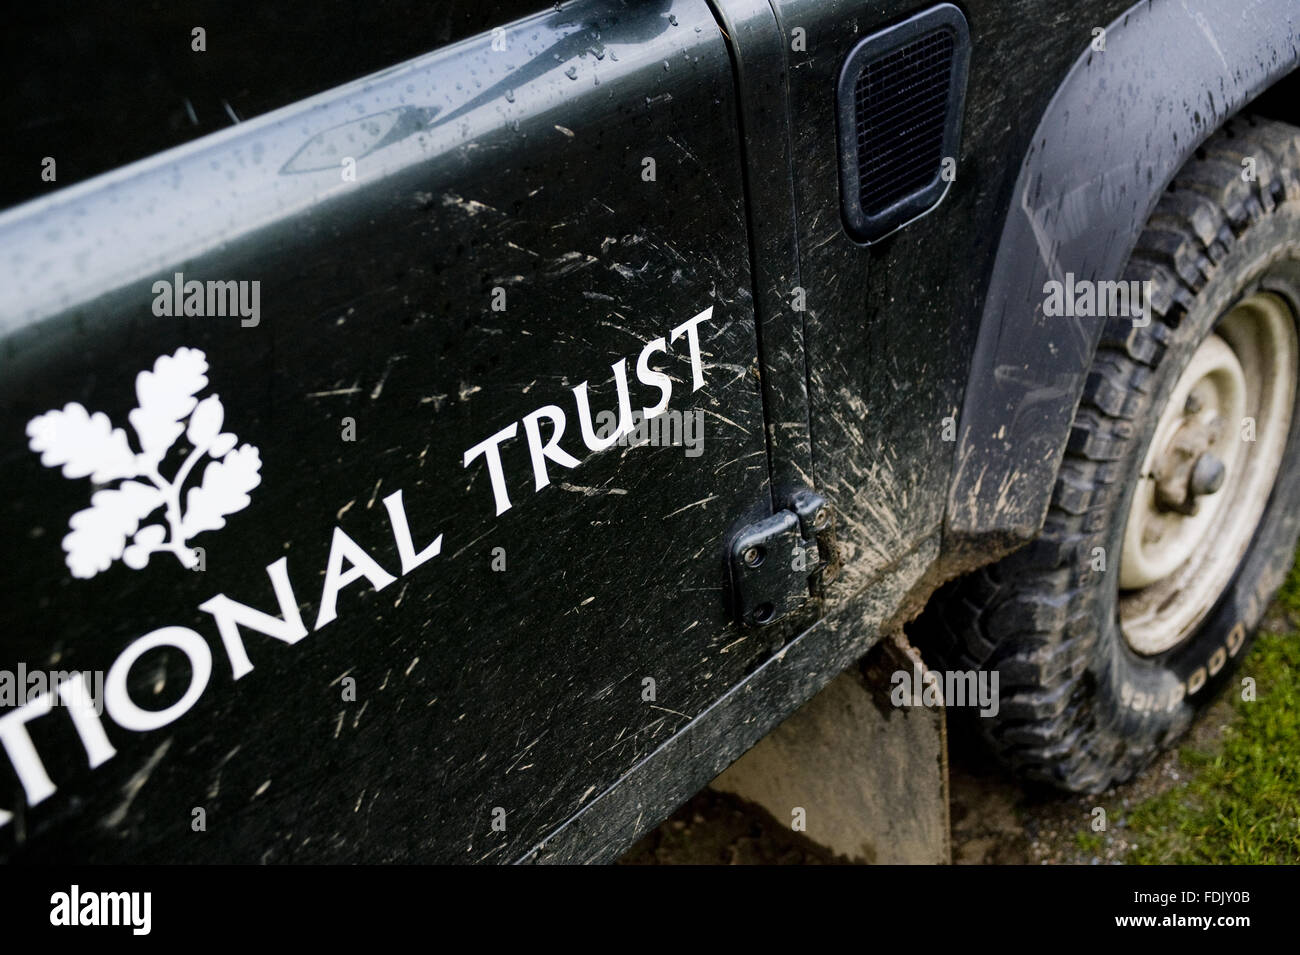 National Trust branded vehicle, used on a NTWorking Holiday, at Bosigran Farm, Cornwall. - Stock Image